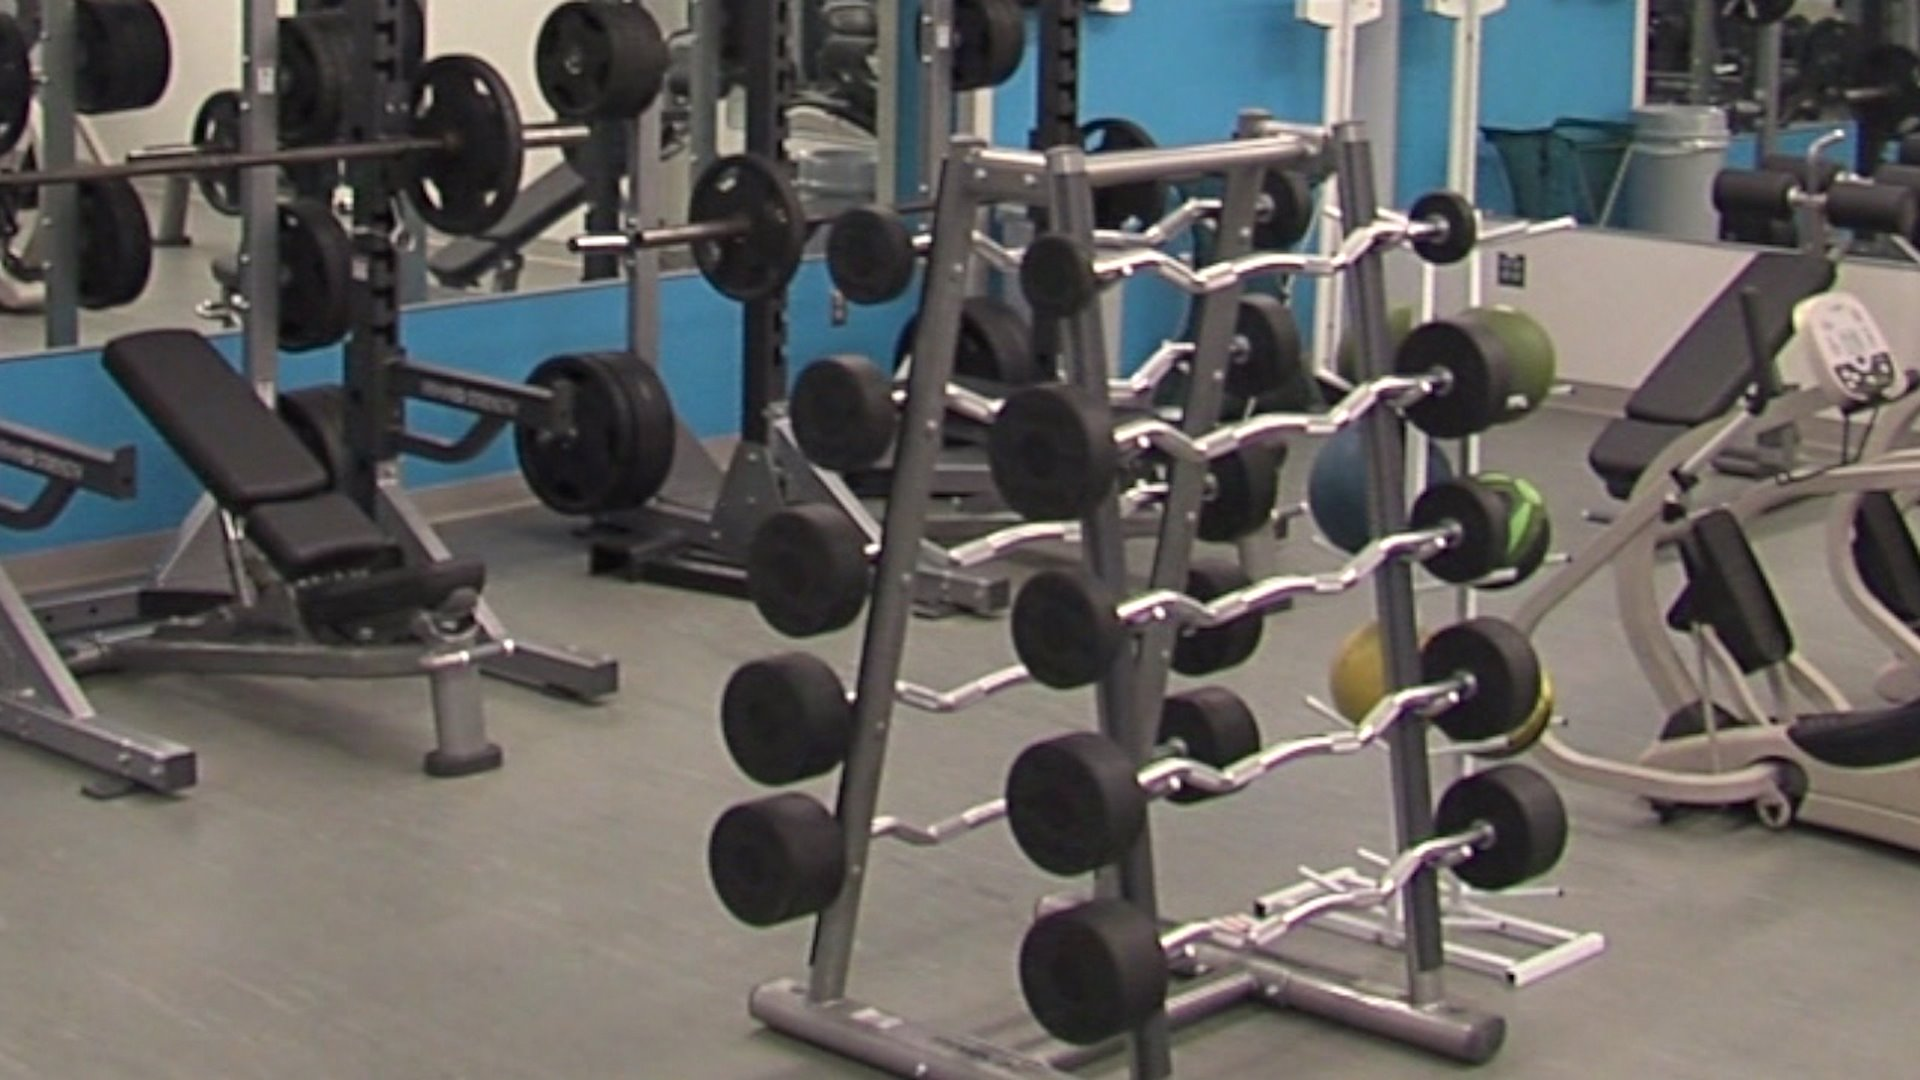 Study Finds Gym Equipment Dirtier Than Public Toilet Seats